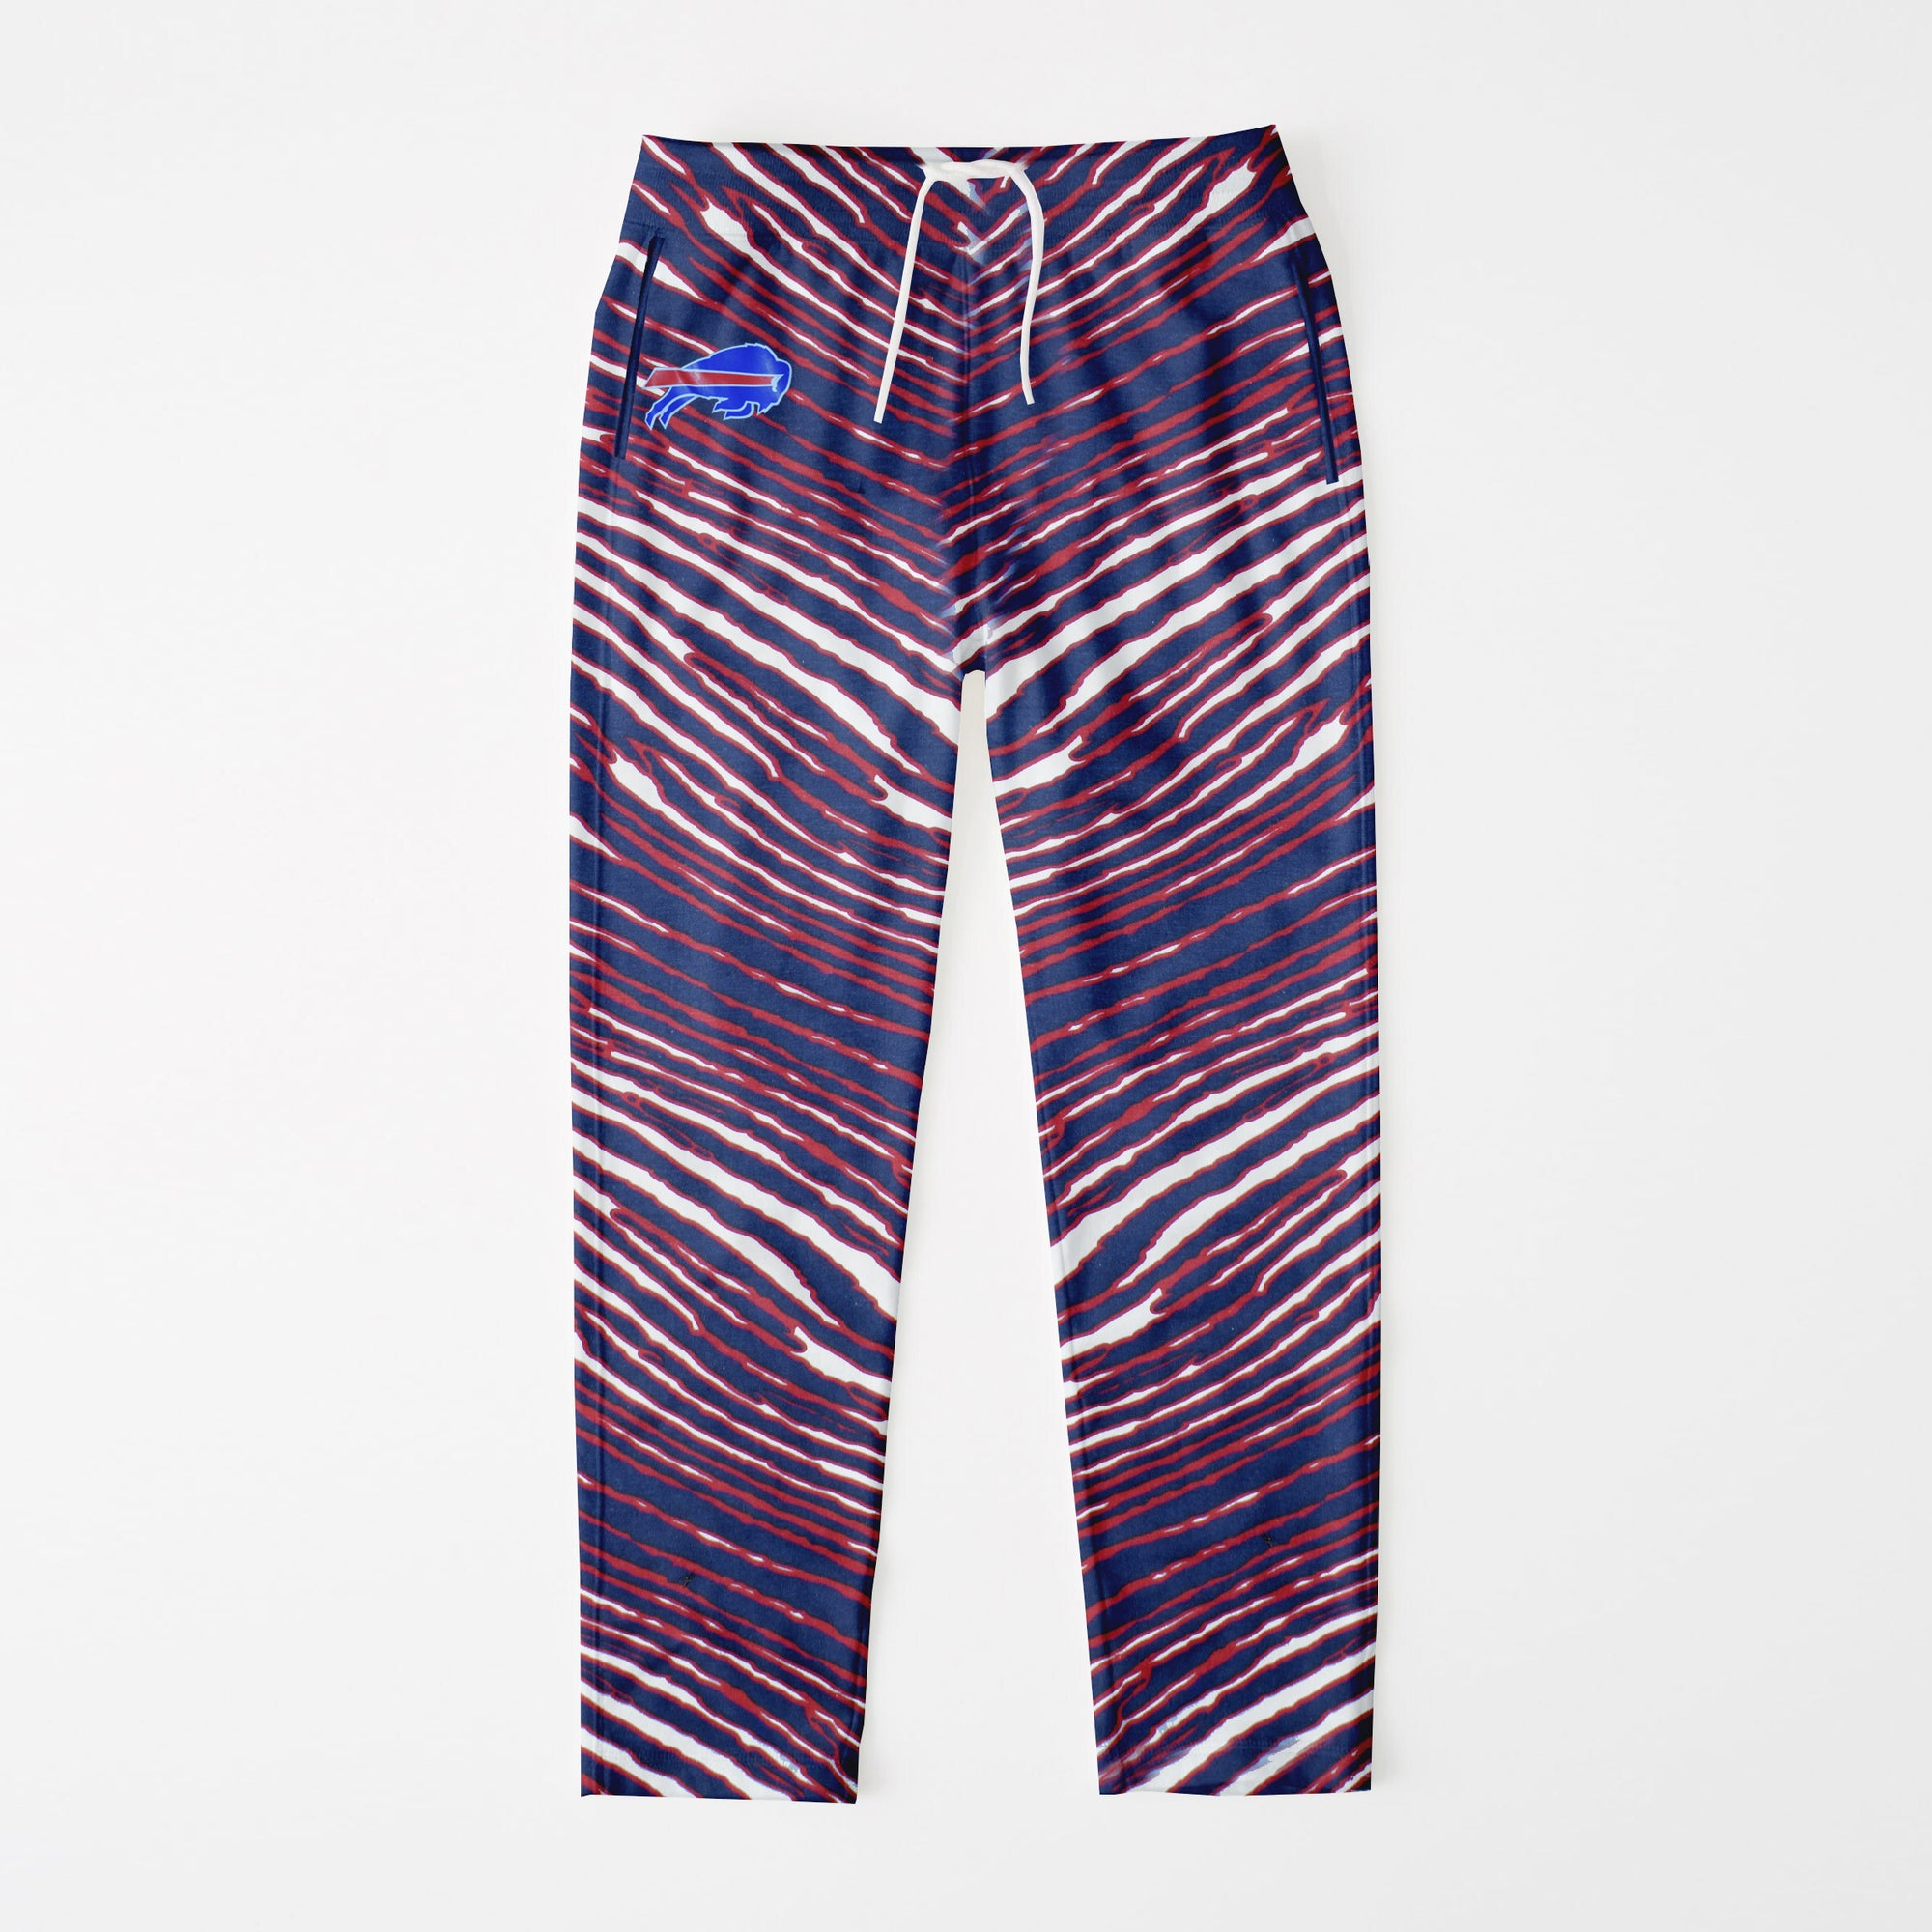 brandsego - Zubaz Zebra Print Regular Fit Trousers For Men-Navy/Red/White-NA9260